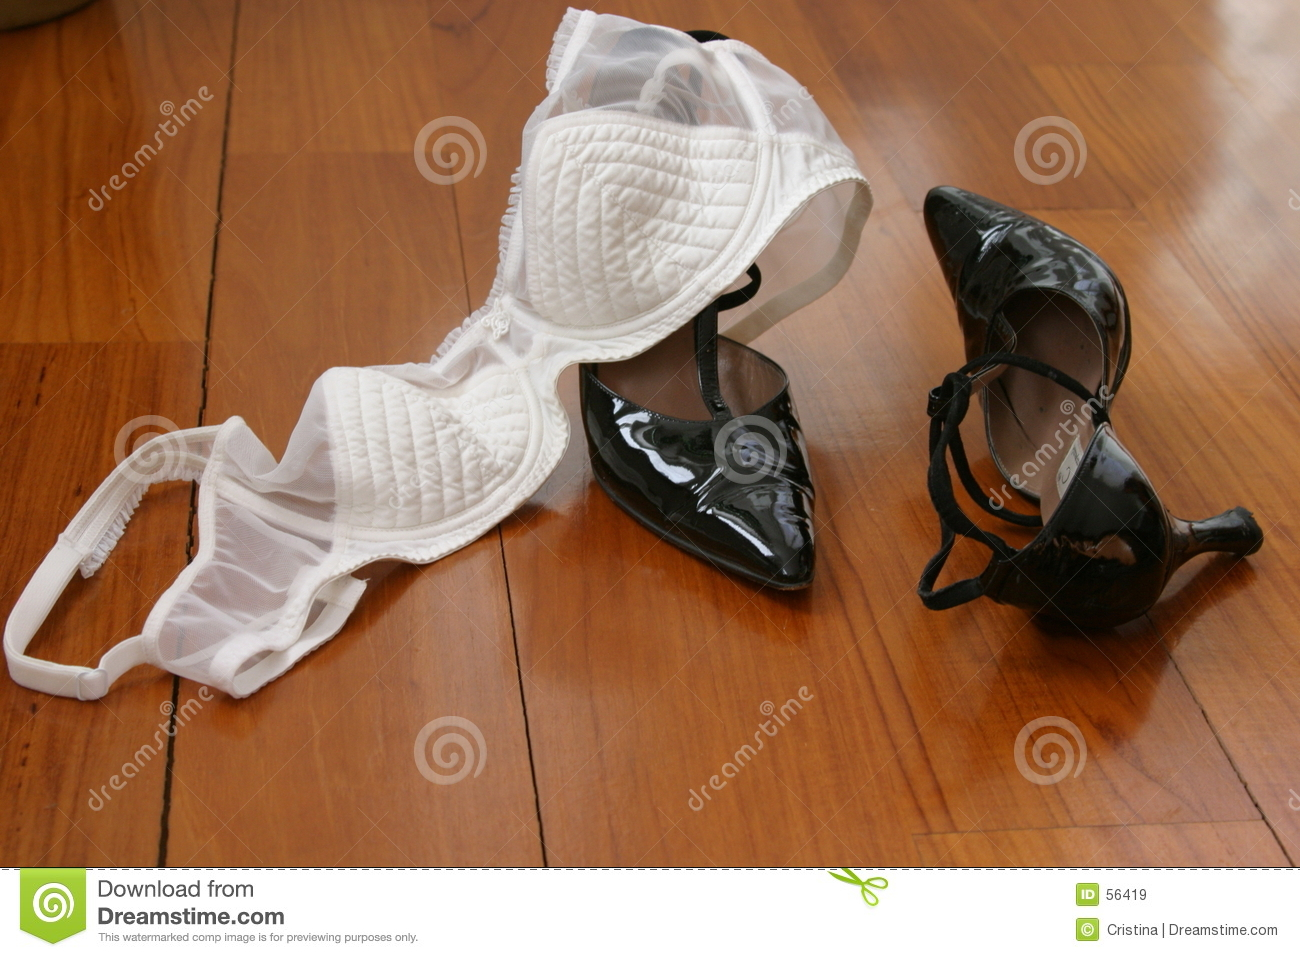 Bra and shoes